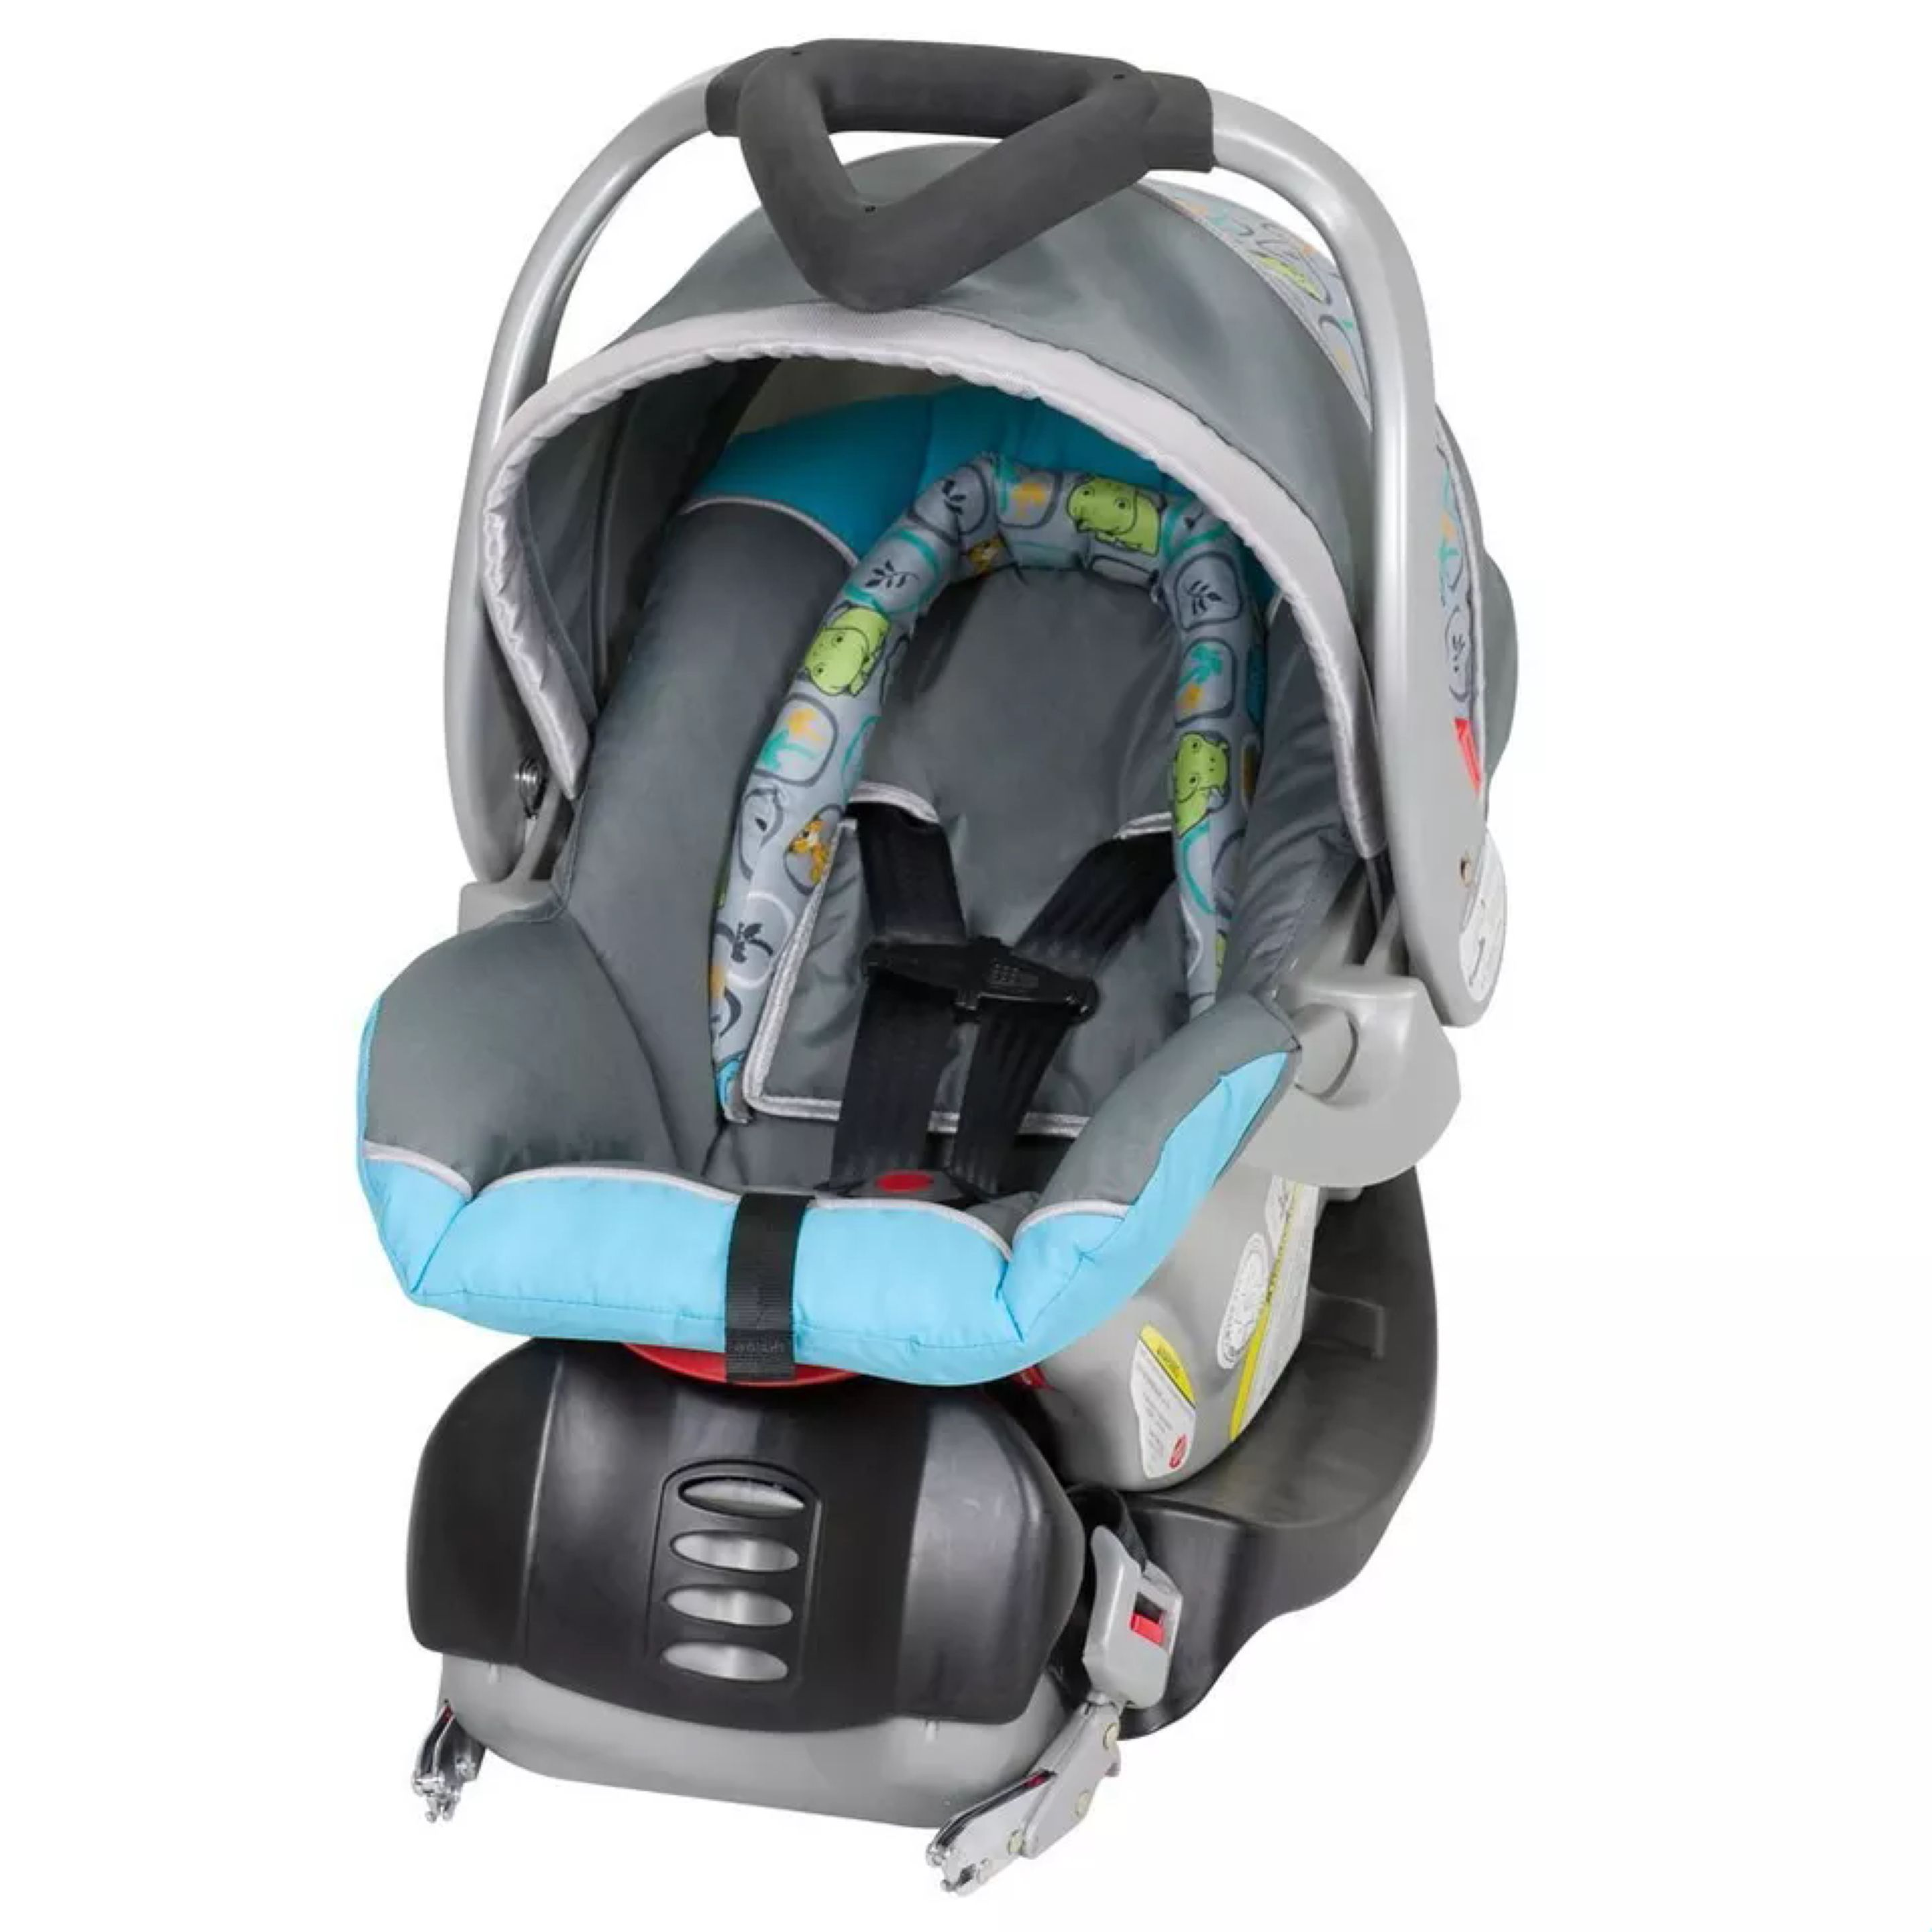 Pin by Staten on Baby Gear Baby car seats, Baby car